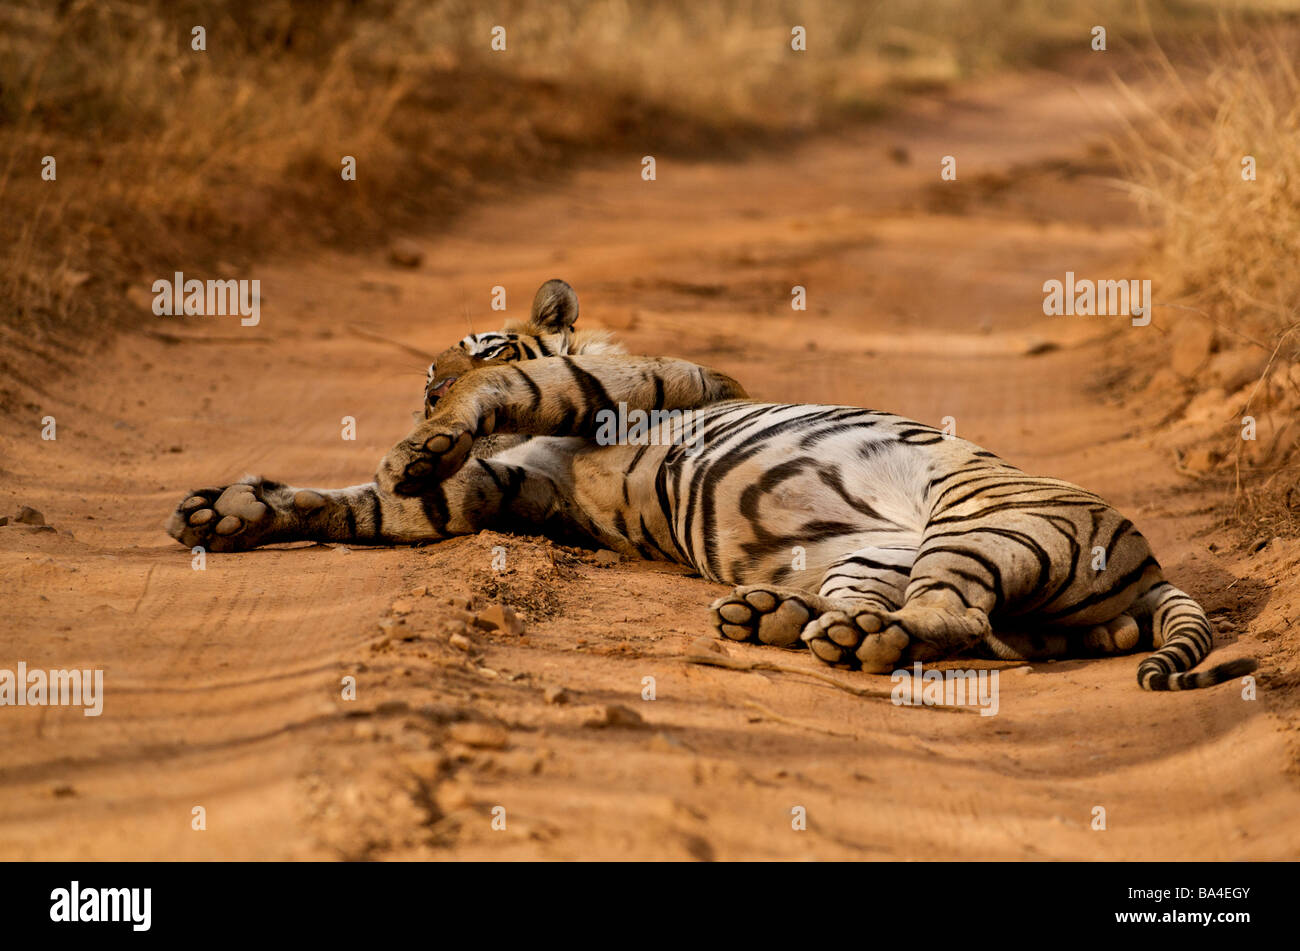 Male Bengal tiger sleeping on a forest track in Ranthambhore national park - Stock Image